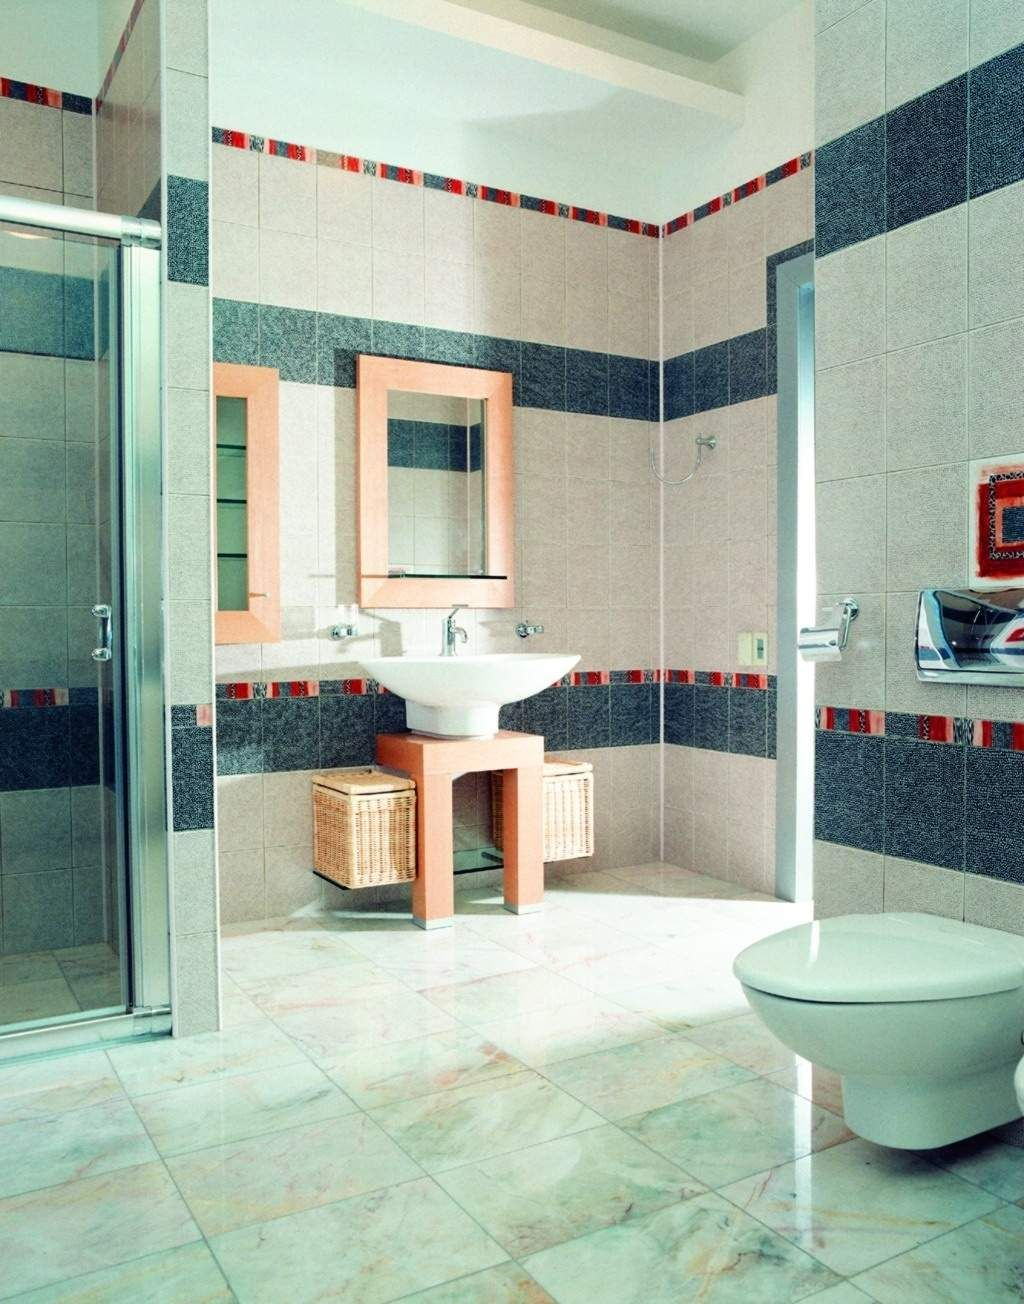 17 best images about bathroom ideas on pinterest traditional bathroom bathroom design pictures and bathroom interior design - Bathroom Interior Design Ideas